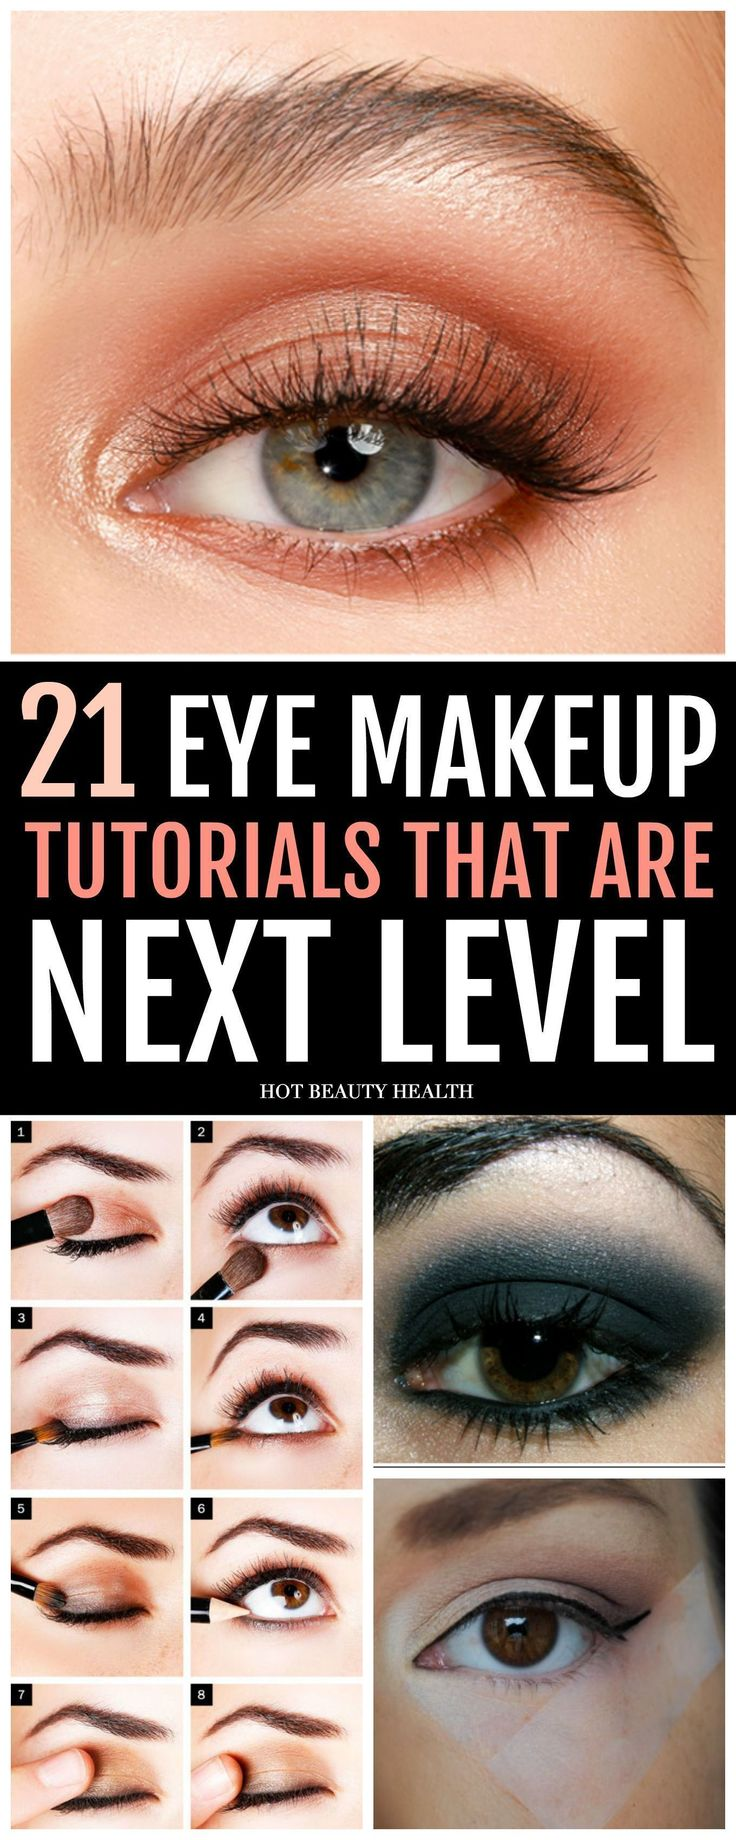 21 easy dramatic eye makeup ideas for beginners. Amazing smokey and colorful eye looks that are next level. You can find a tutorial for blue, green, hazel, or brown eyes; hooded eyes, cut crease, and more. Perfect for prom, wedding or an evening look. Click pin for step by step and video tutorials! Hot Beauty Health #makeuptutorials #eyemakeup #eyemakeuptutorials #makeuplookswedding #hoodedeyemakeup #cutcreasestepbystep